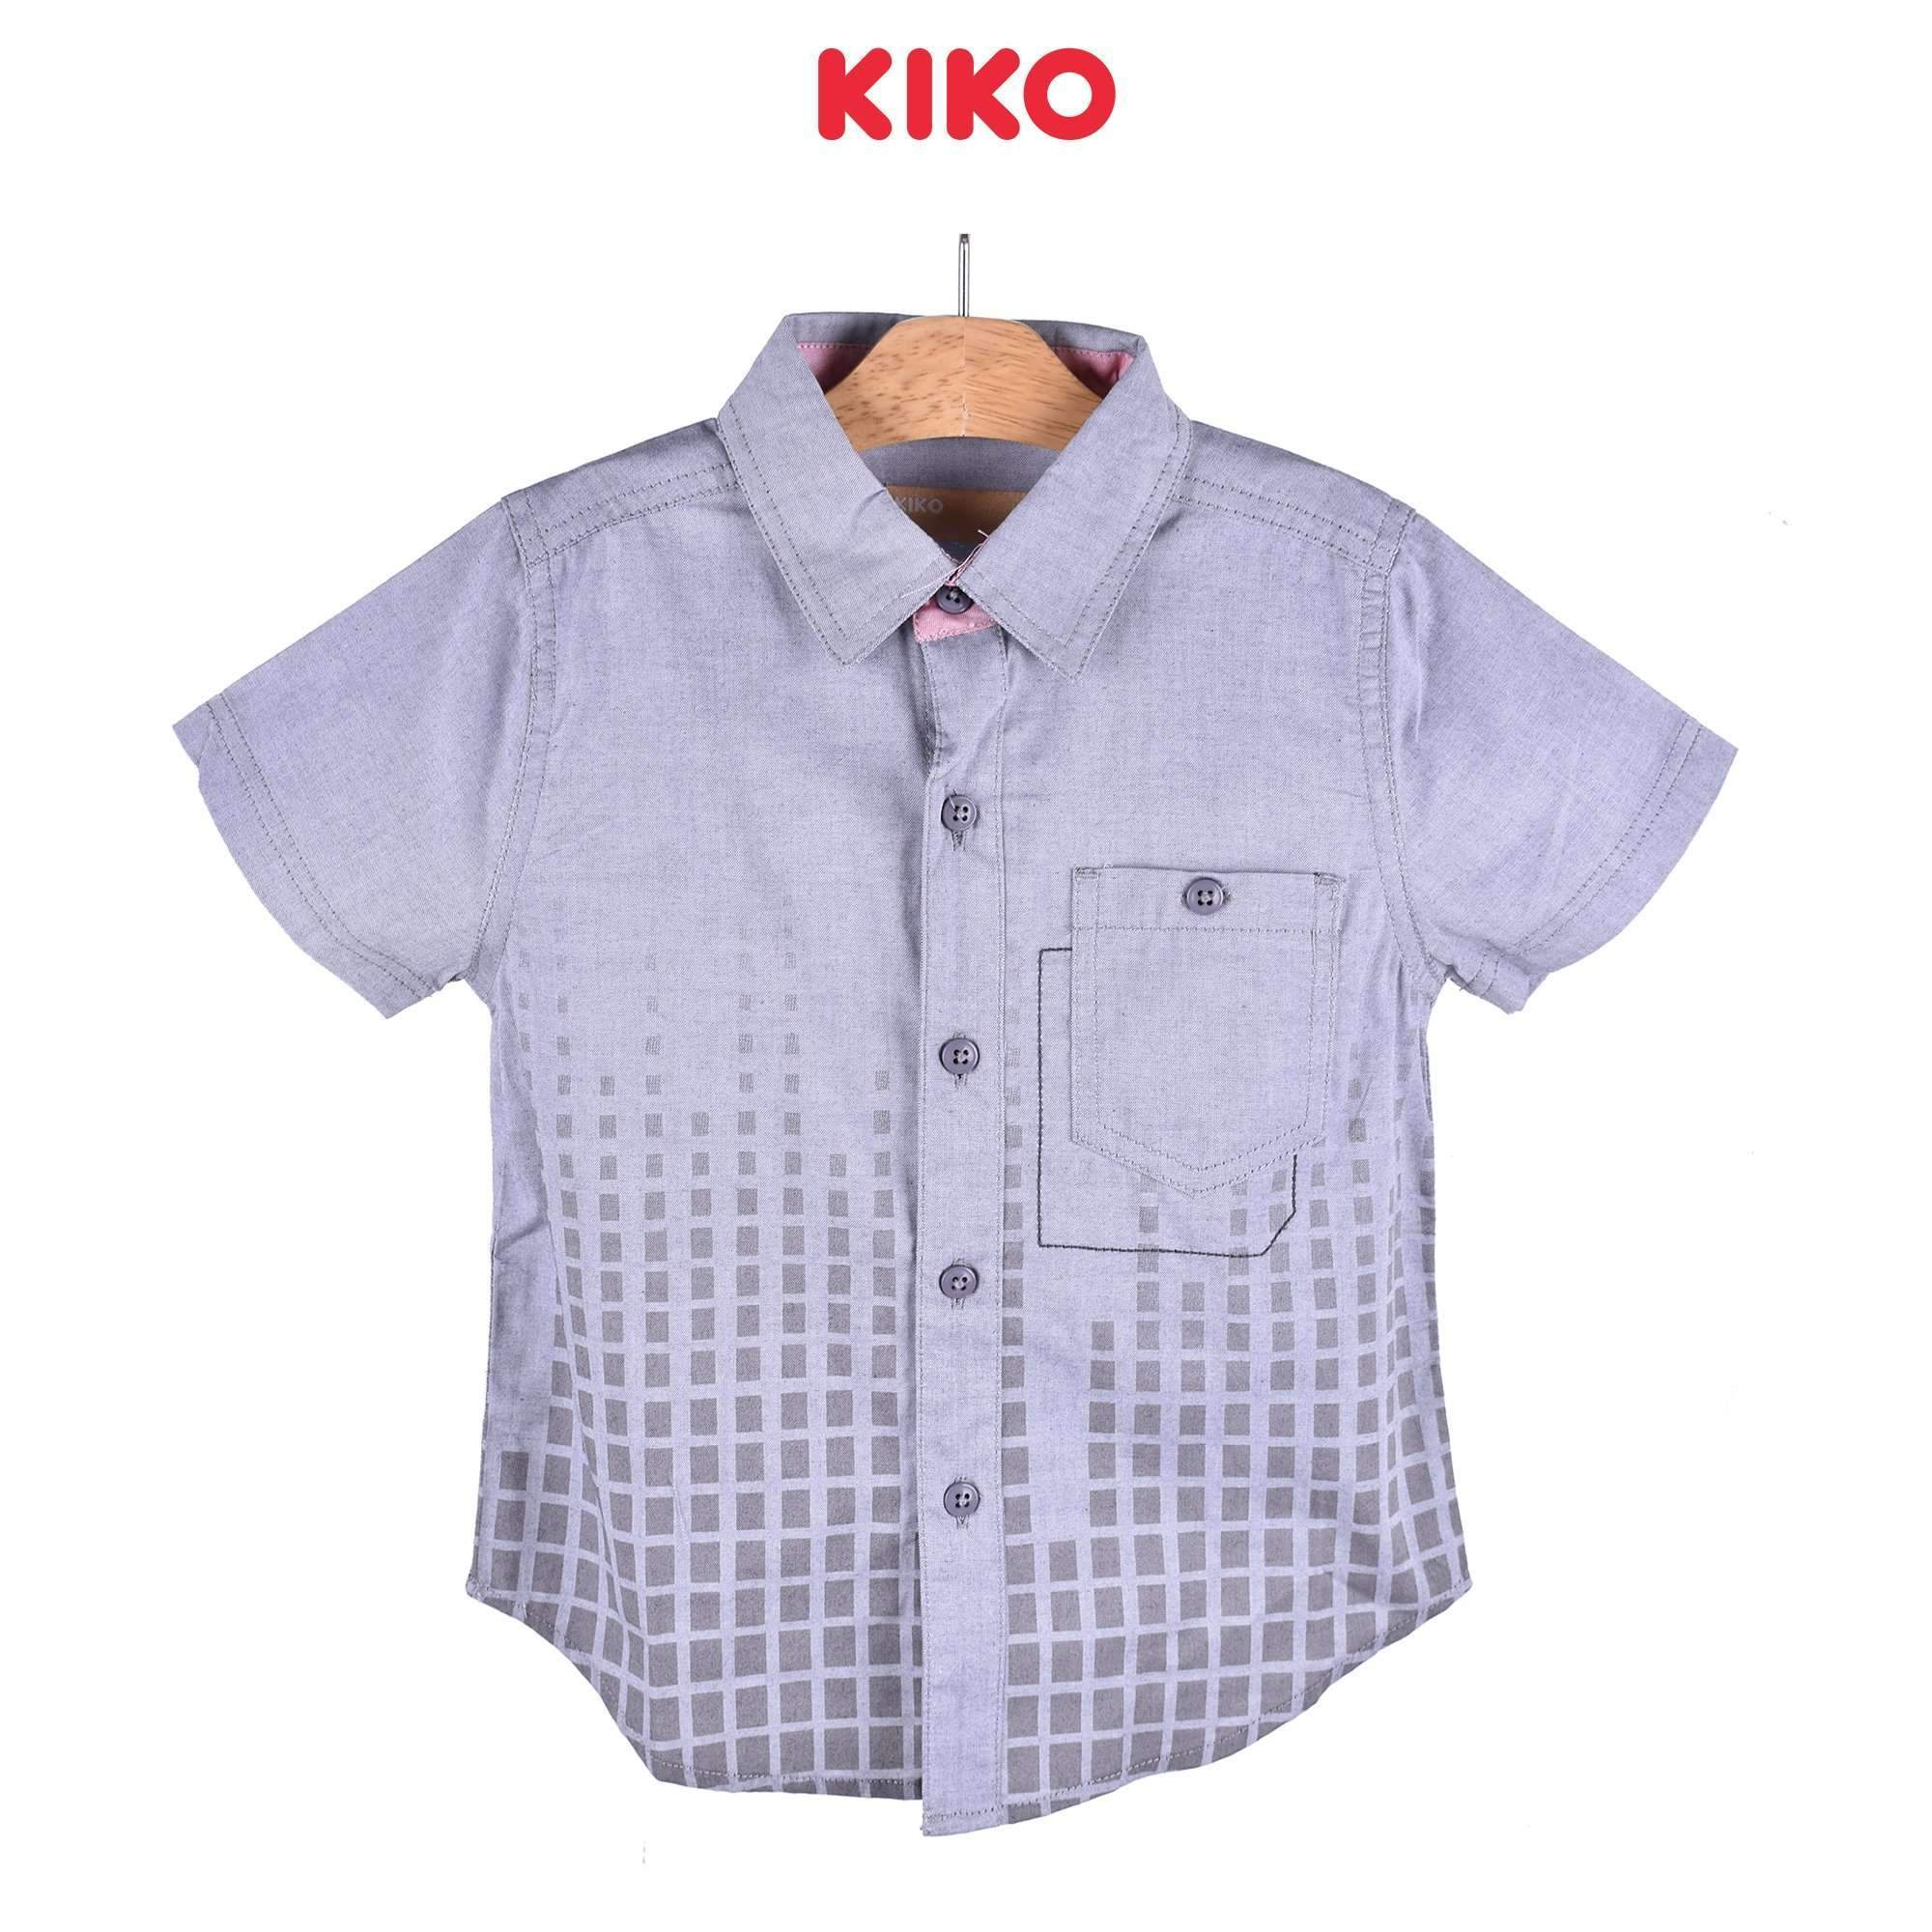 KIKO Boy Short Sleeve Shirt - Grey 120070-141 : Buy KIKO online at CMG.MY